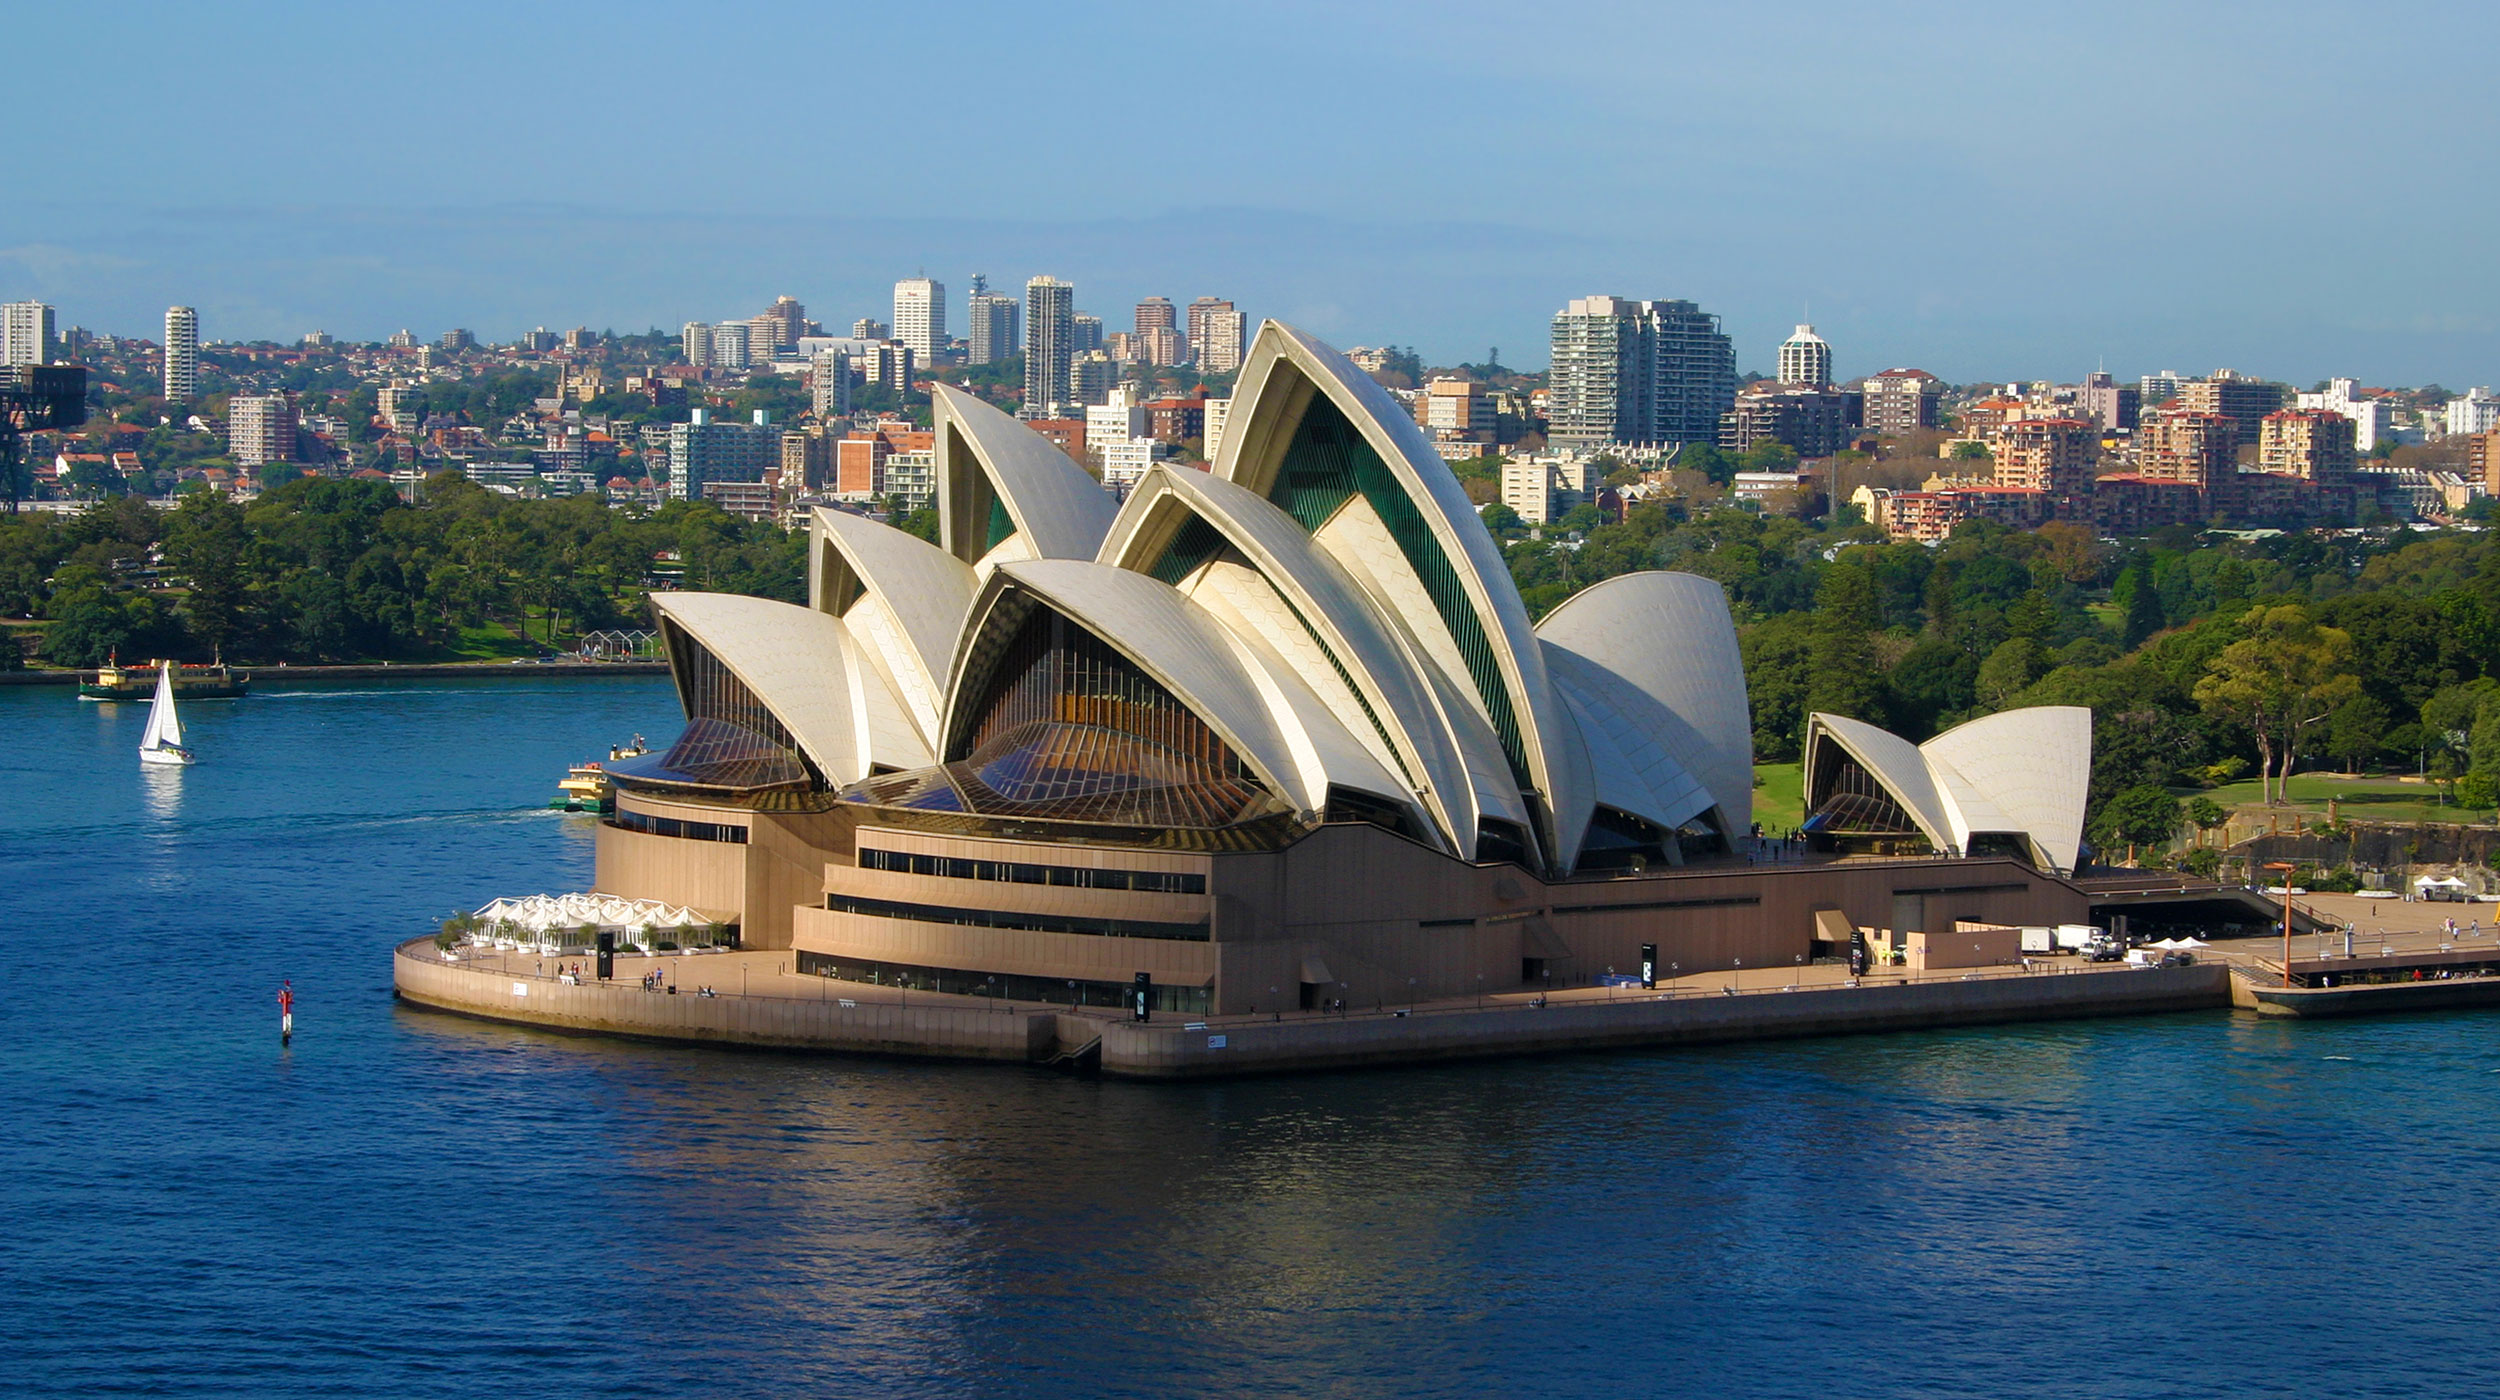 View of Sydney Opera House from above in Sydney, Australia.